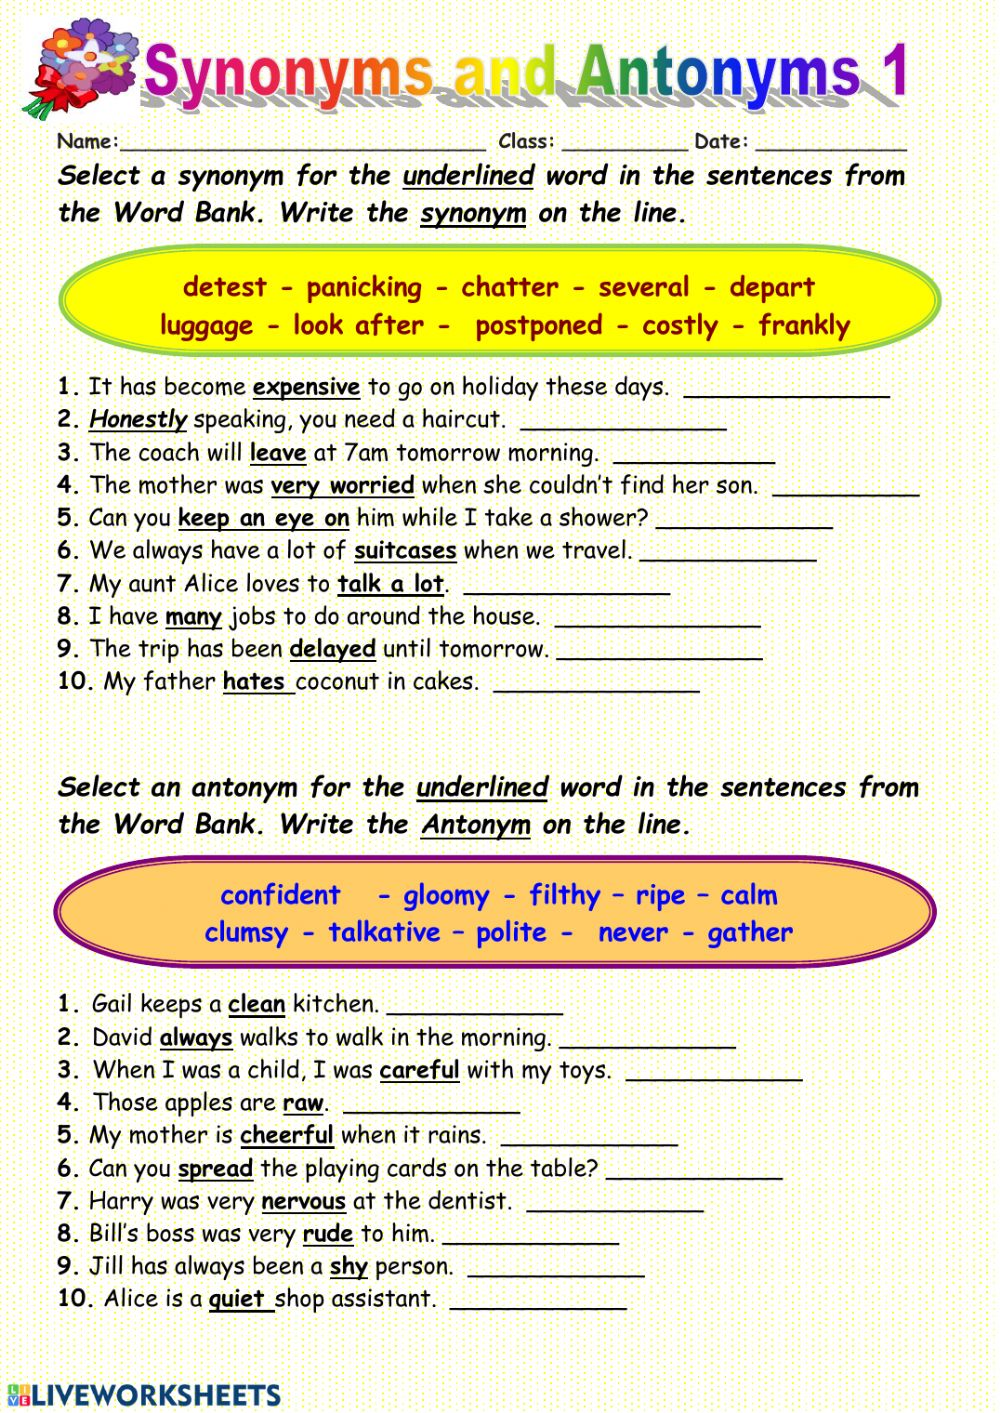 Synonyms interactive worksheet